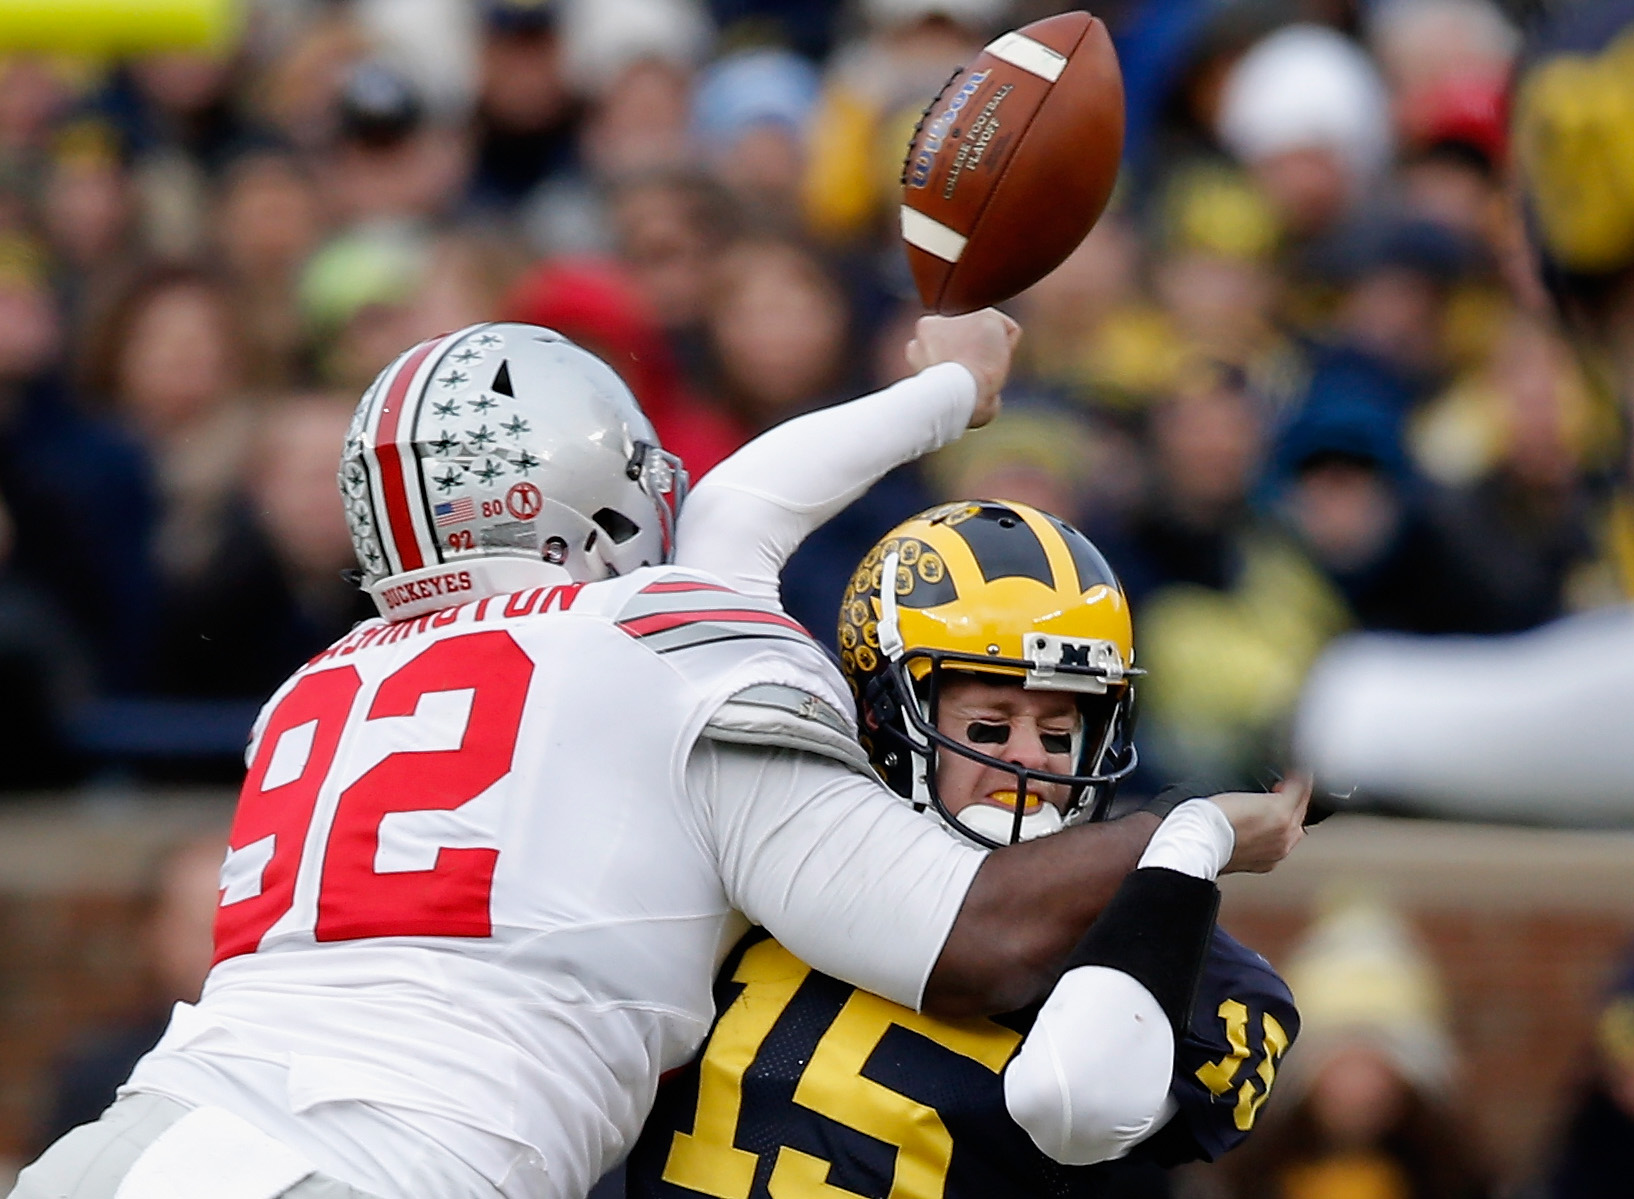 ANN ARBOR, MI - NOVEMBER 28: Quarterback Jake Rudock #15 of the Michigan Wolverines fumbles the ball while being hit by Adolphus Washington #92 of the Ohio State Buckeyes in the third quarter at Michigan Stadium on November 28, 2015 in Ann Arbor, Michigan.  (Photo by Gregory Shamus/Getty Images)